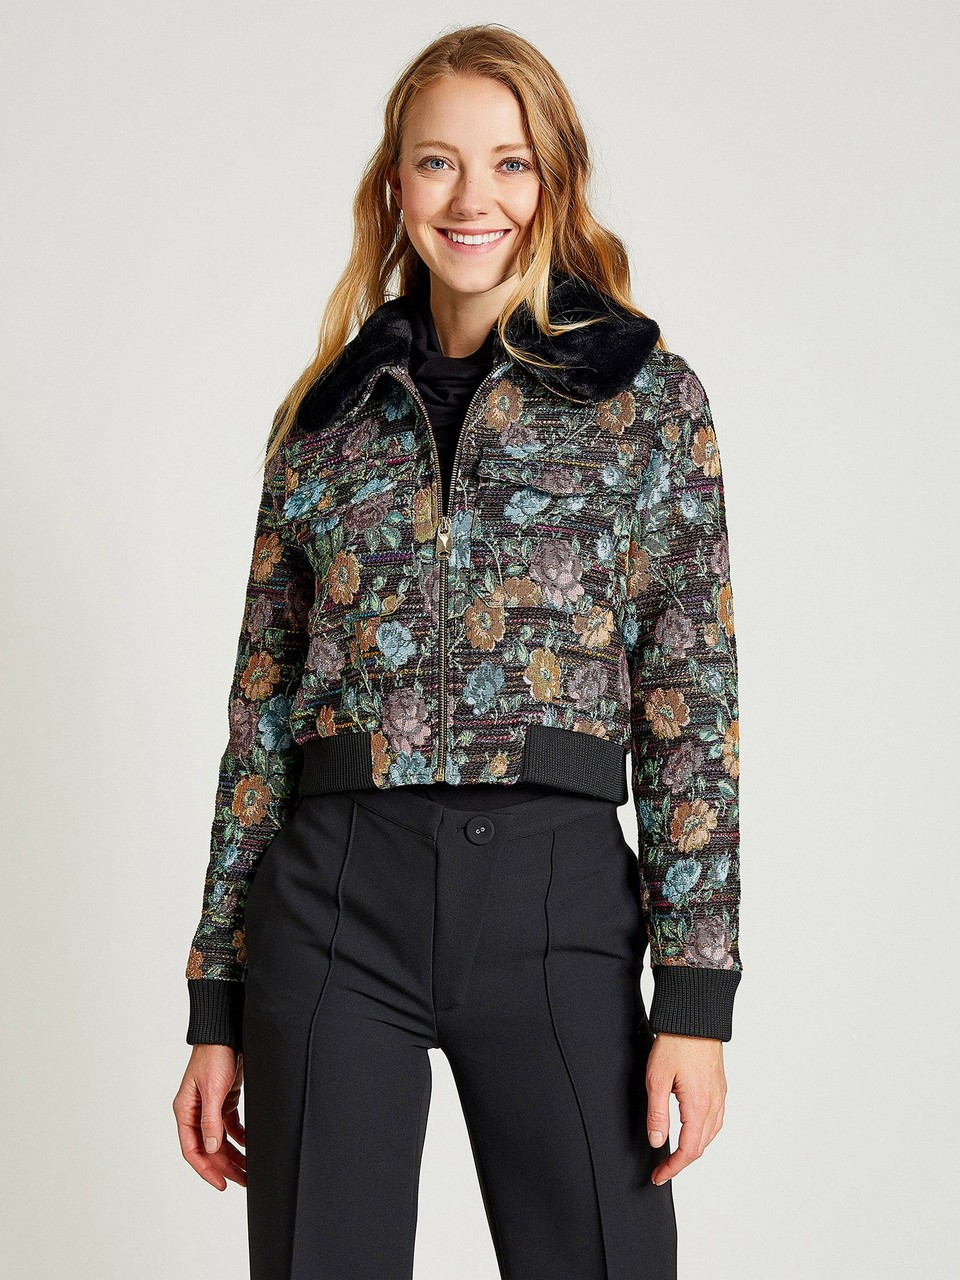 Floral Patterned Jacket With Fur